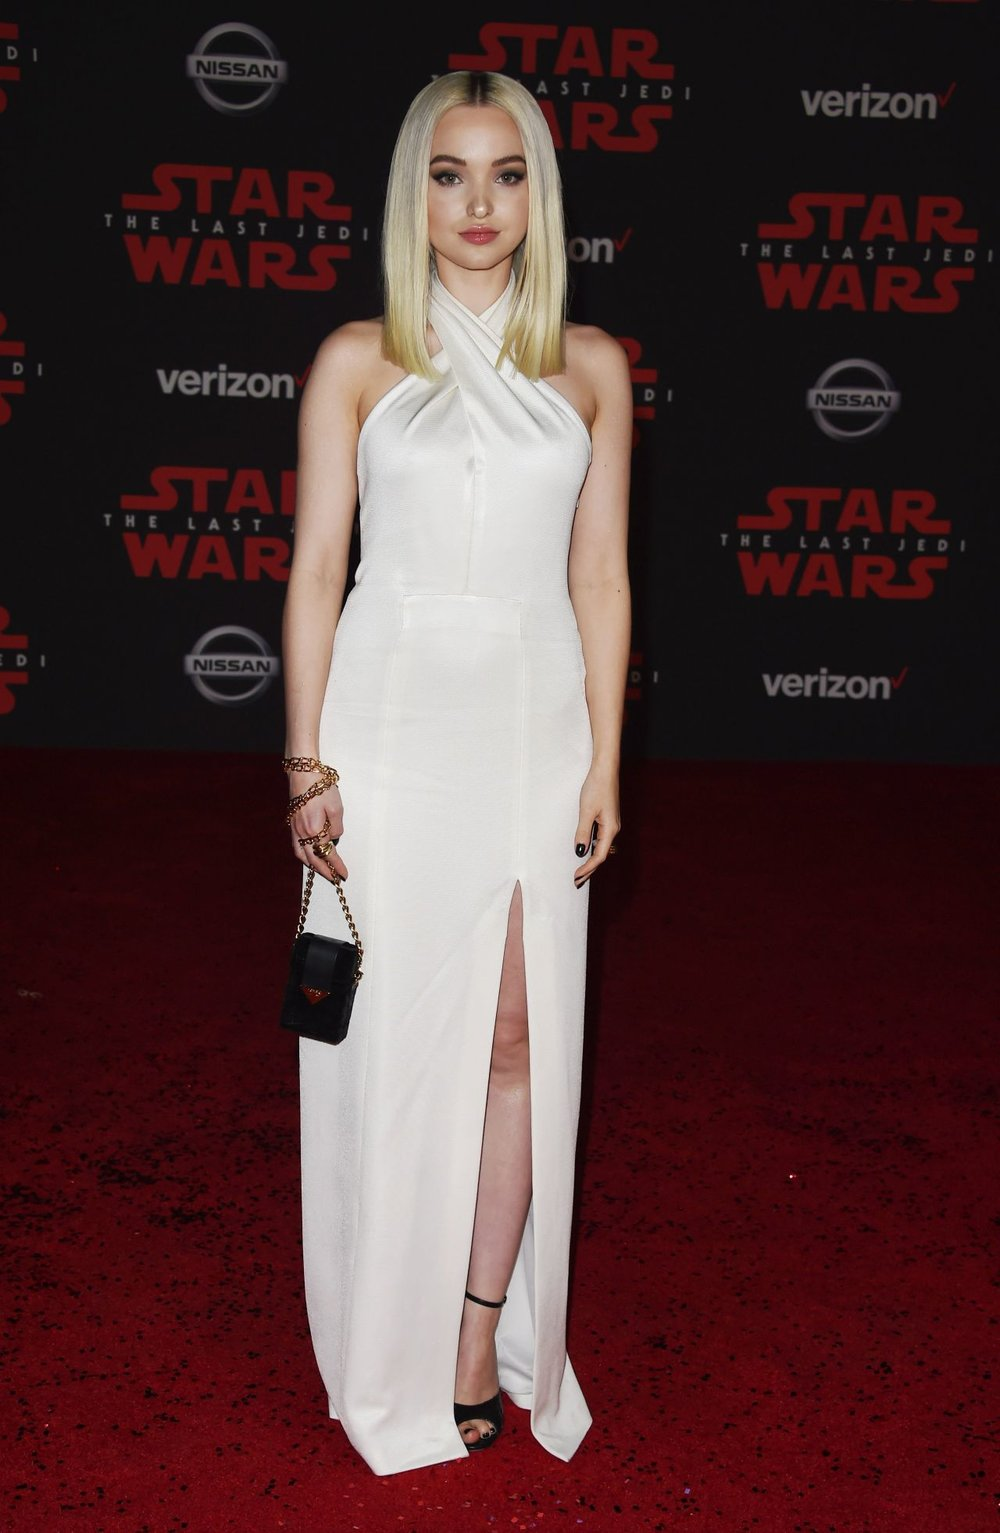 dove-cameron-star-wars-the-last-jedi-premiere-in-la-0.jpg